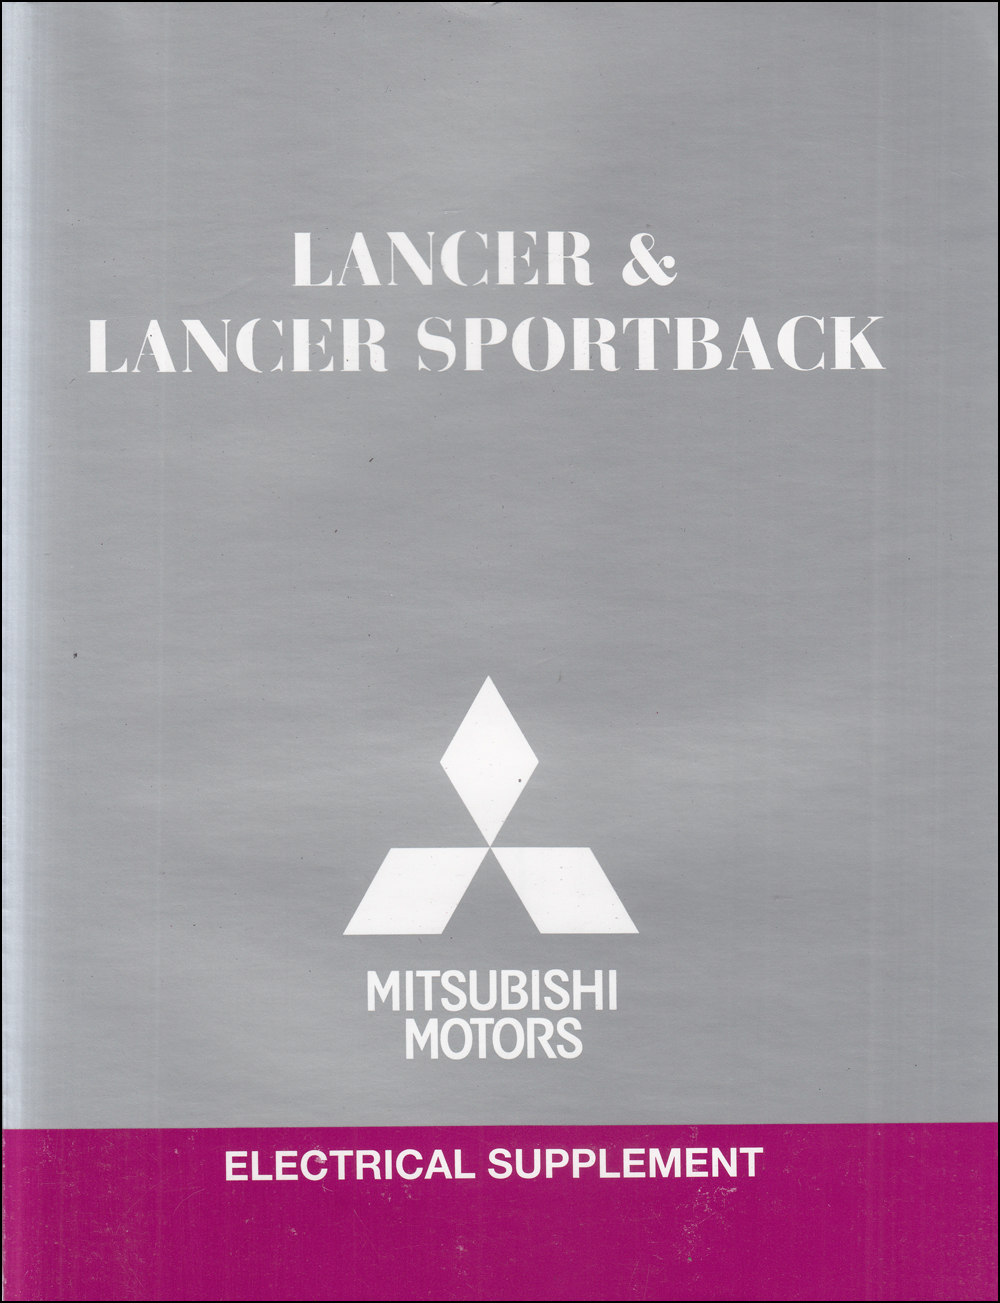 2012 Mitsubishi Lancer & Lancer Sportback Wiring Diagram Manual Original